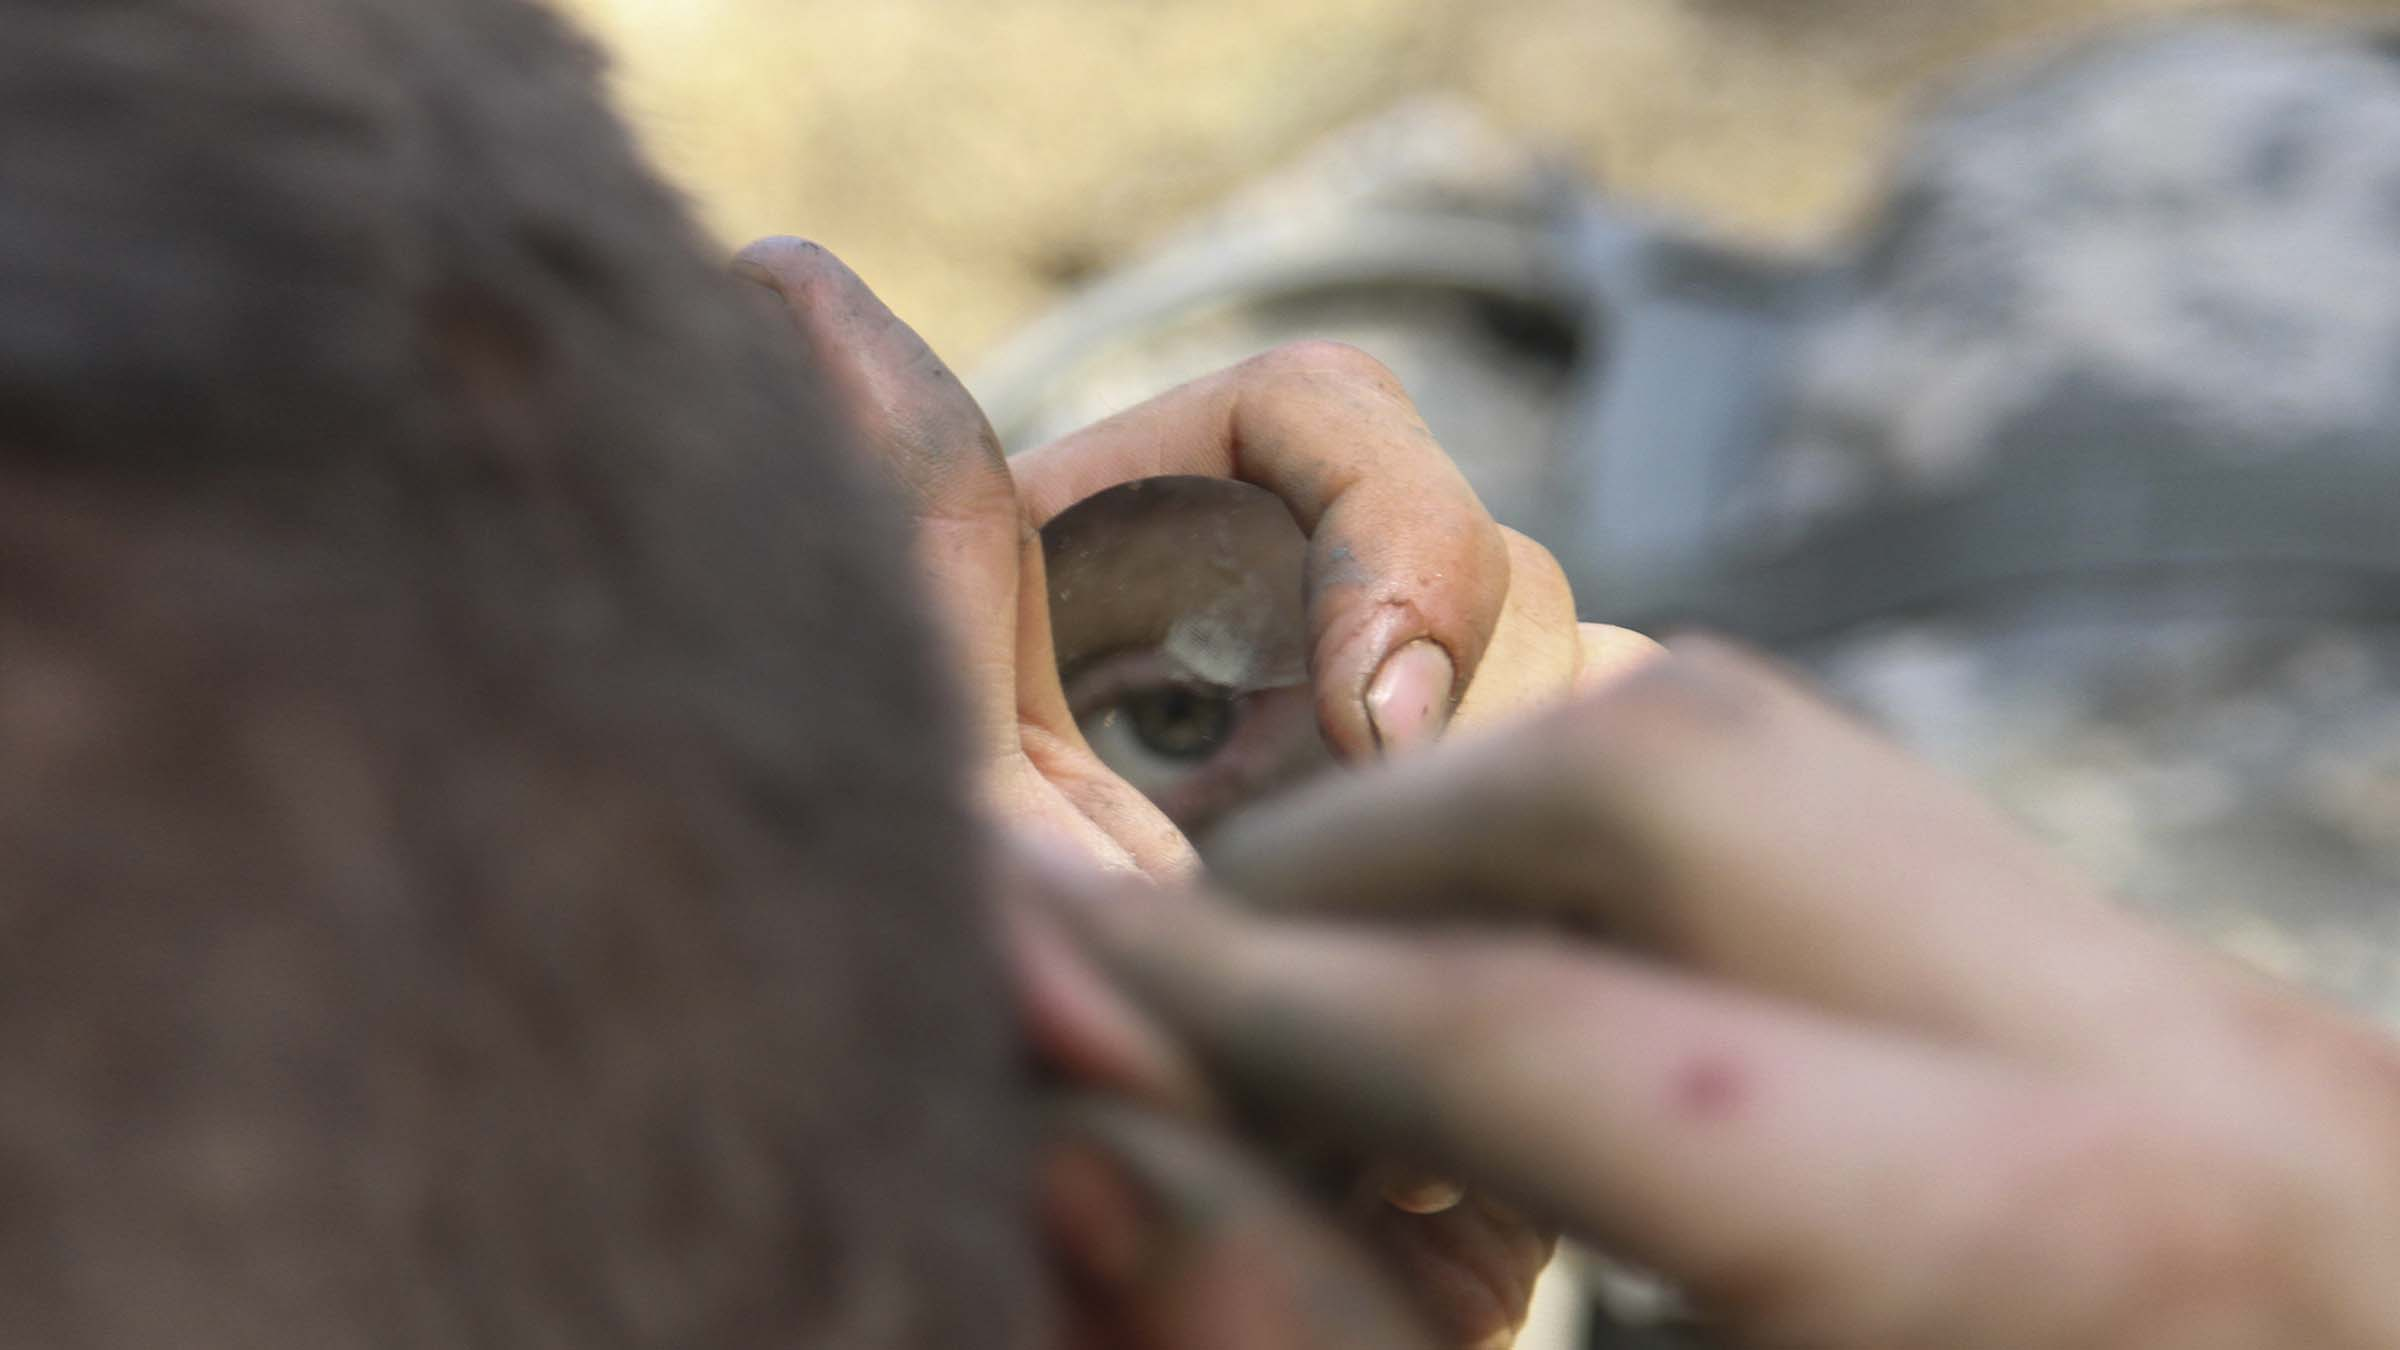 Reflected eye of a service member in a tiny mirror as he puts on camo paint.